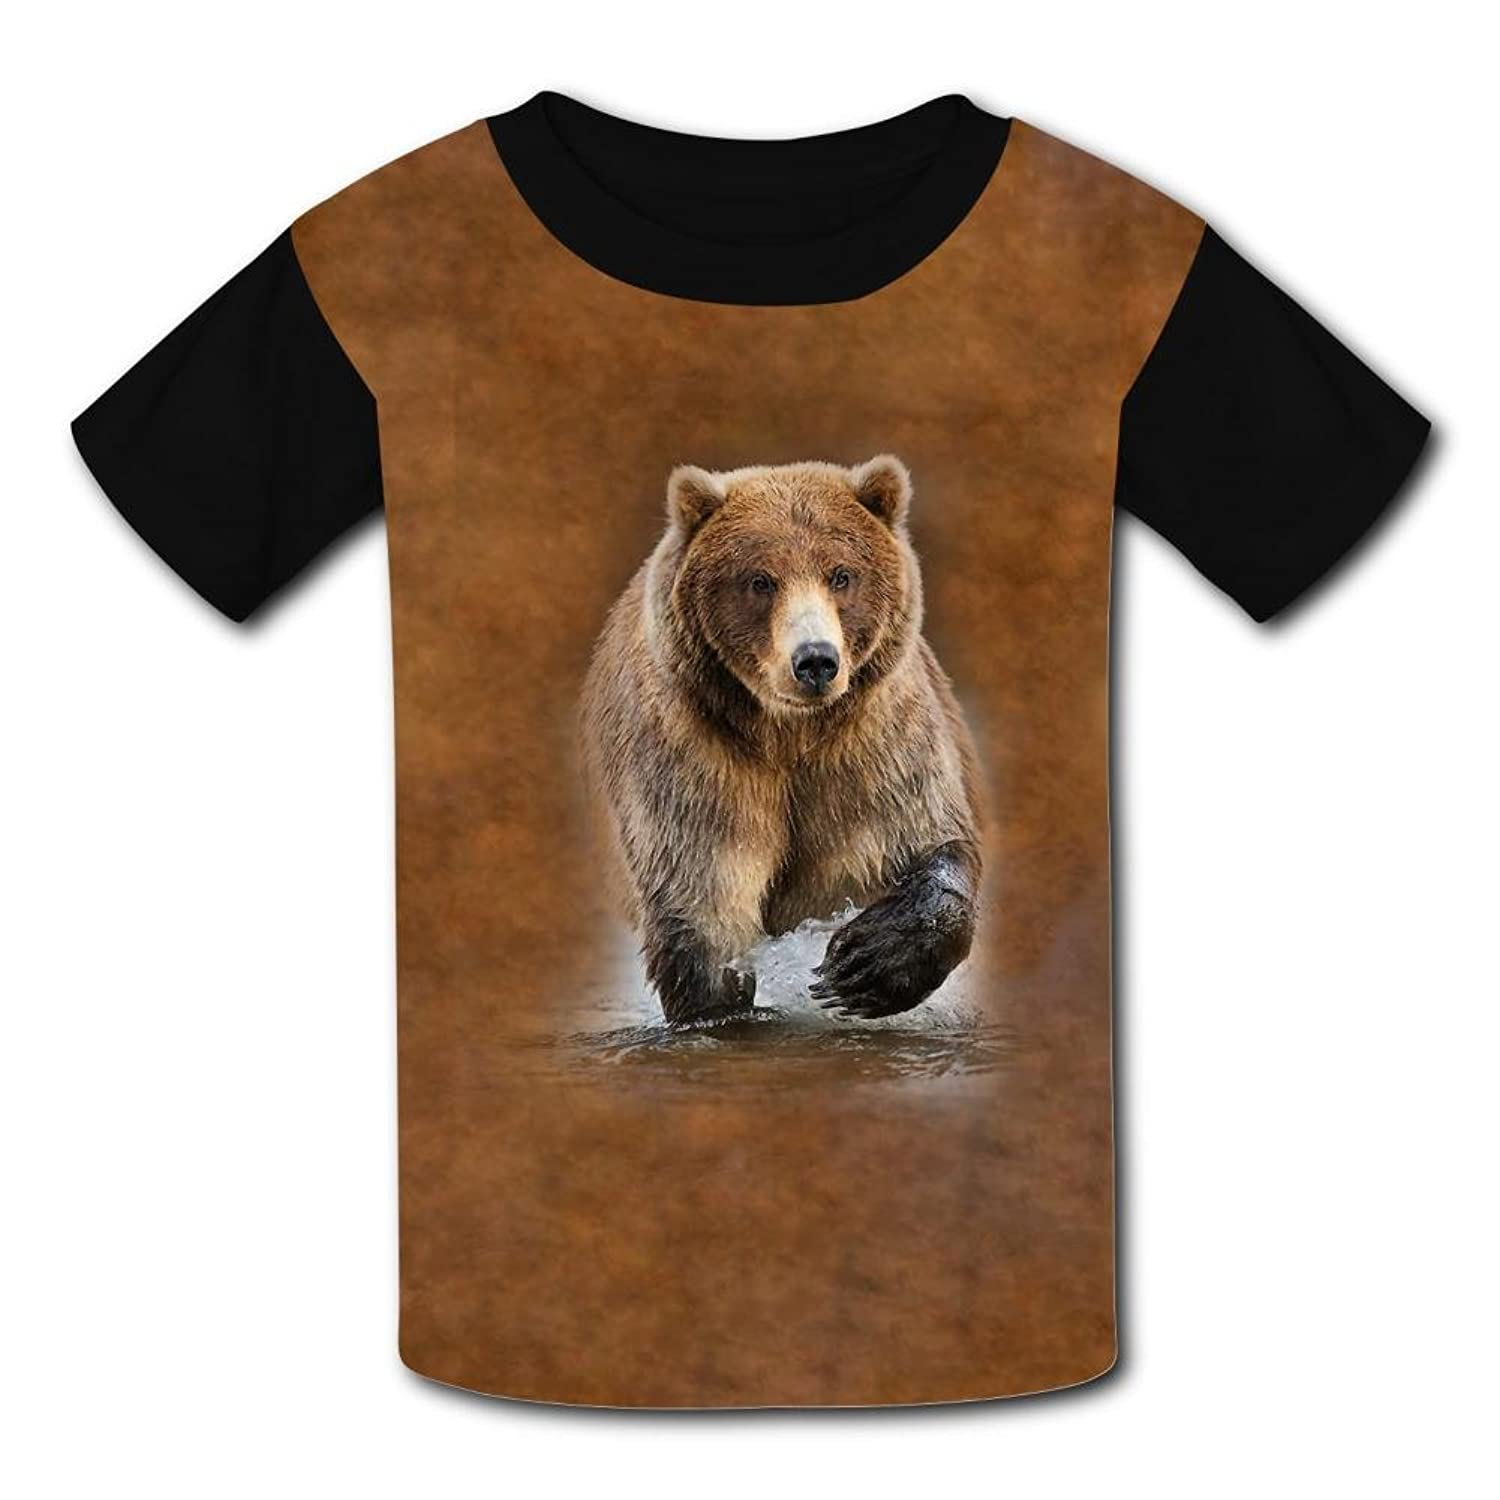 Bear Light Weight Tee Shirts 2017 The Latest Version for Girlsfree Postage free shipping